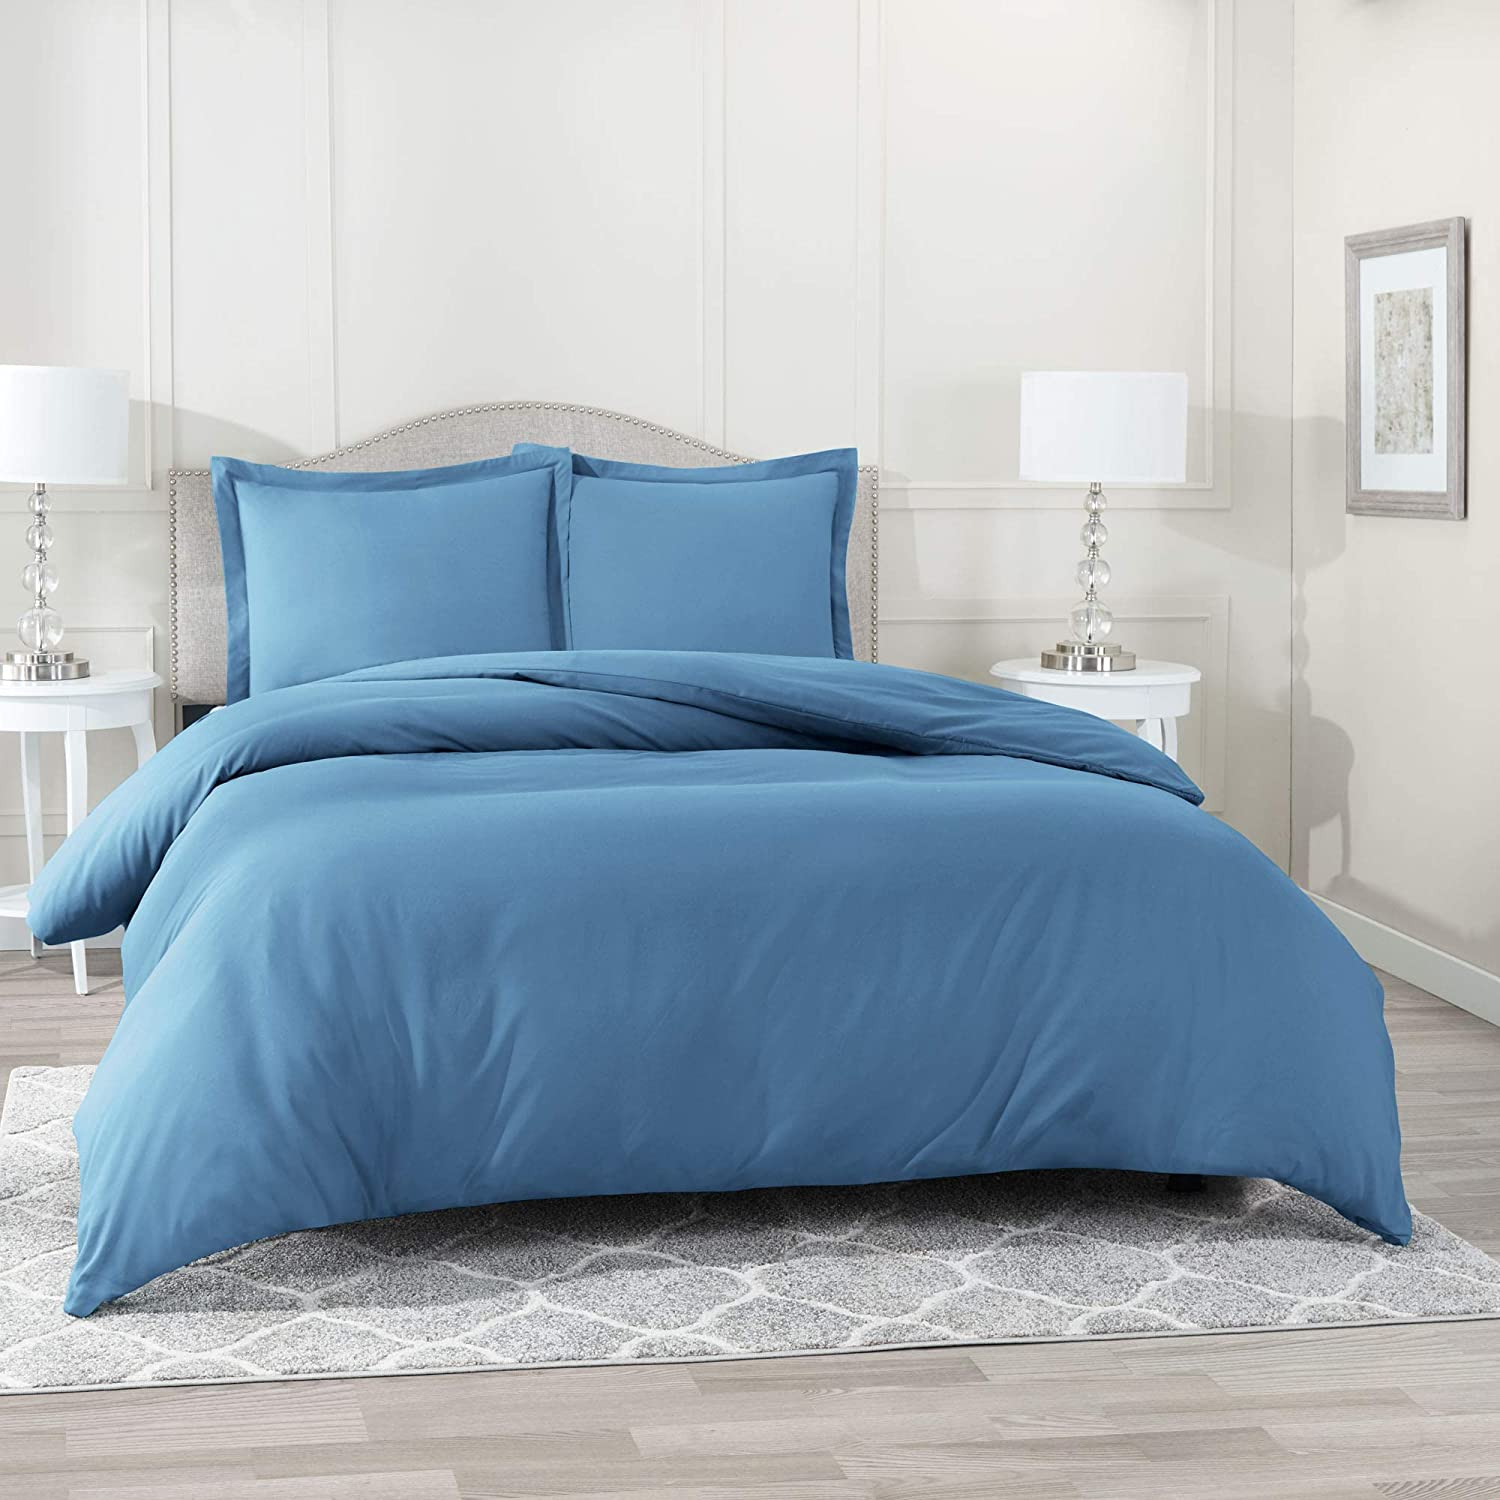 Nestl Duvet Cover 2 Piece Set – Ultra Soft Double Brushed Microfiber Hotel-Quality – Comforter Cover with Button Closure and 1 Pillow Sham, Blue Heaven - Twin (Single) 68